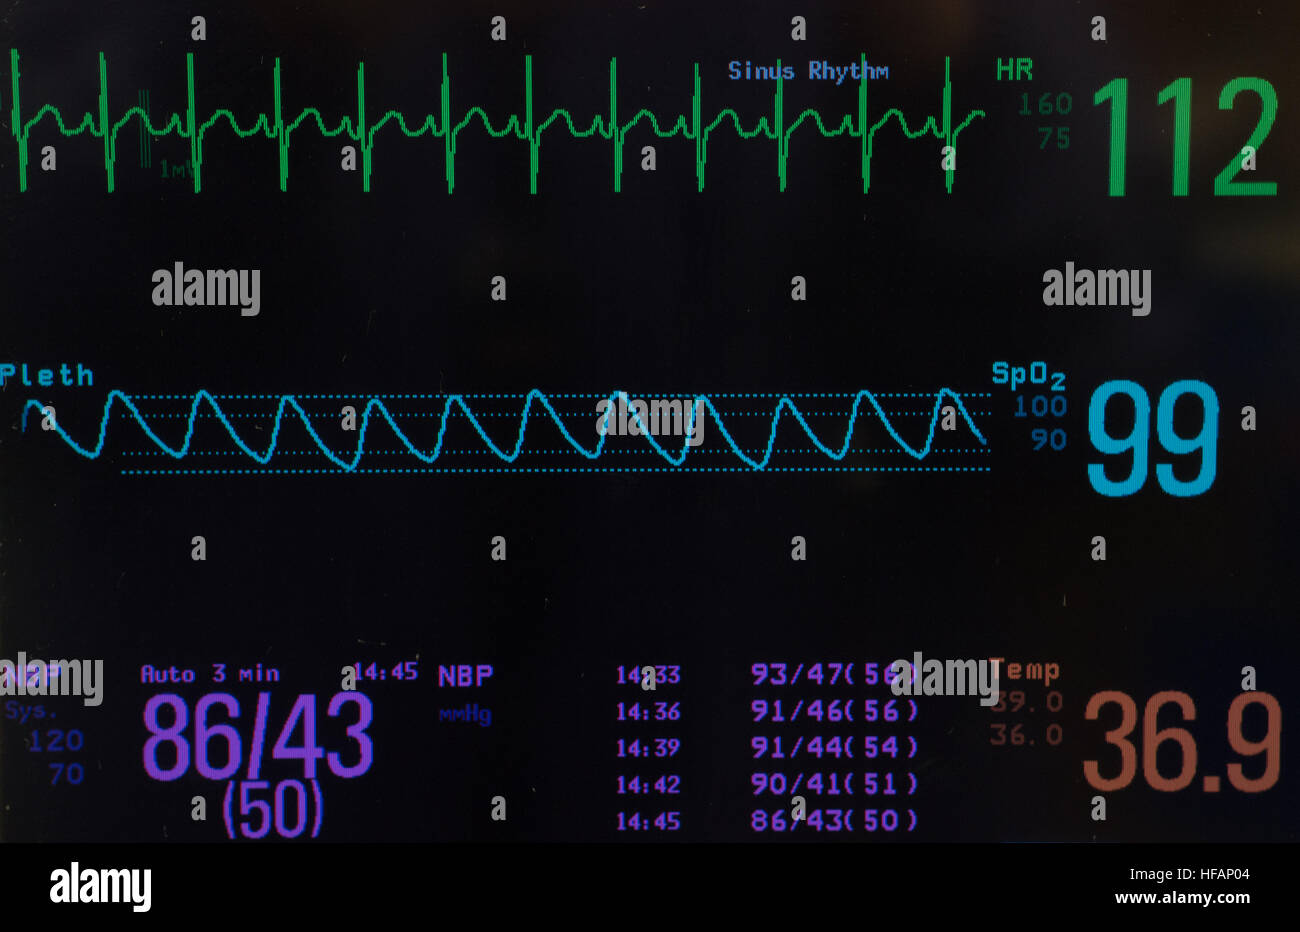 Monitor with ECG of pediatric heart rhythm, oxygen saturation, blood pressure and temperature against black background. - Stock Image